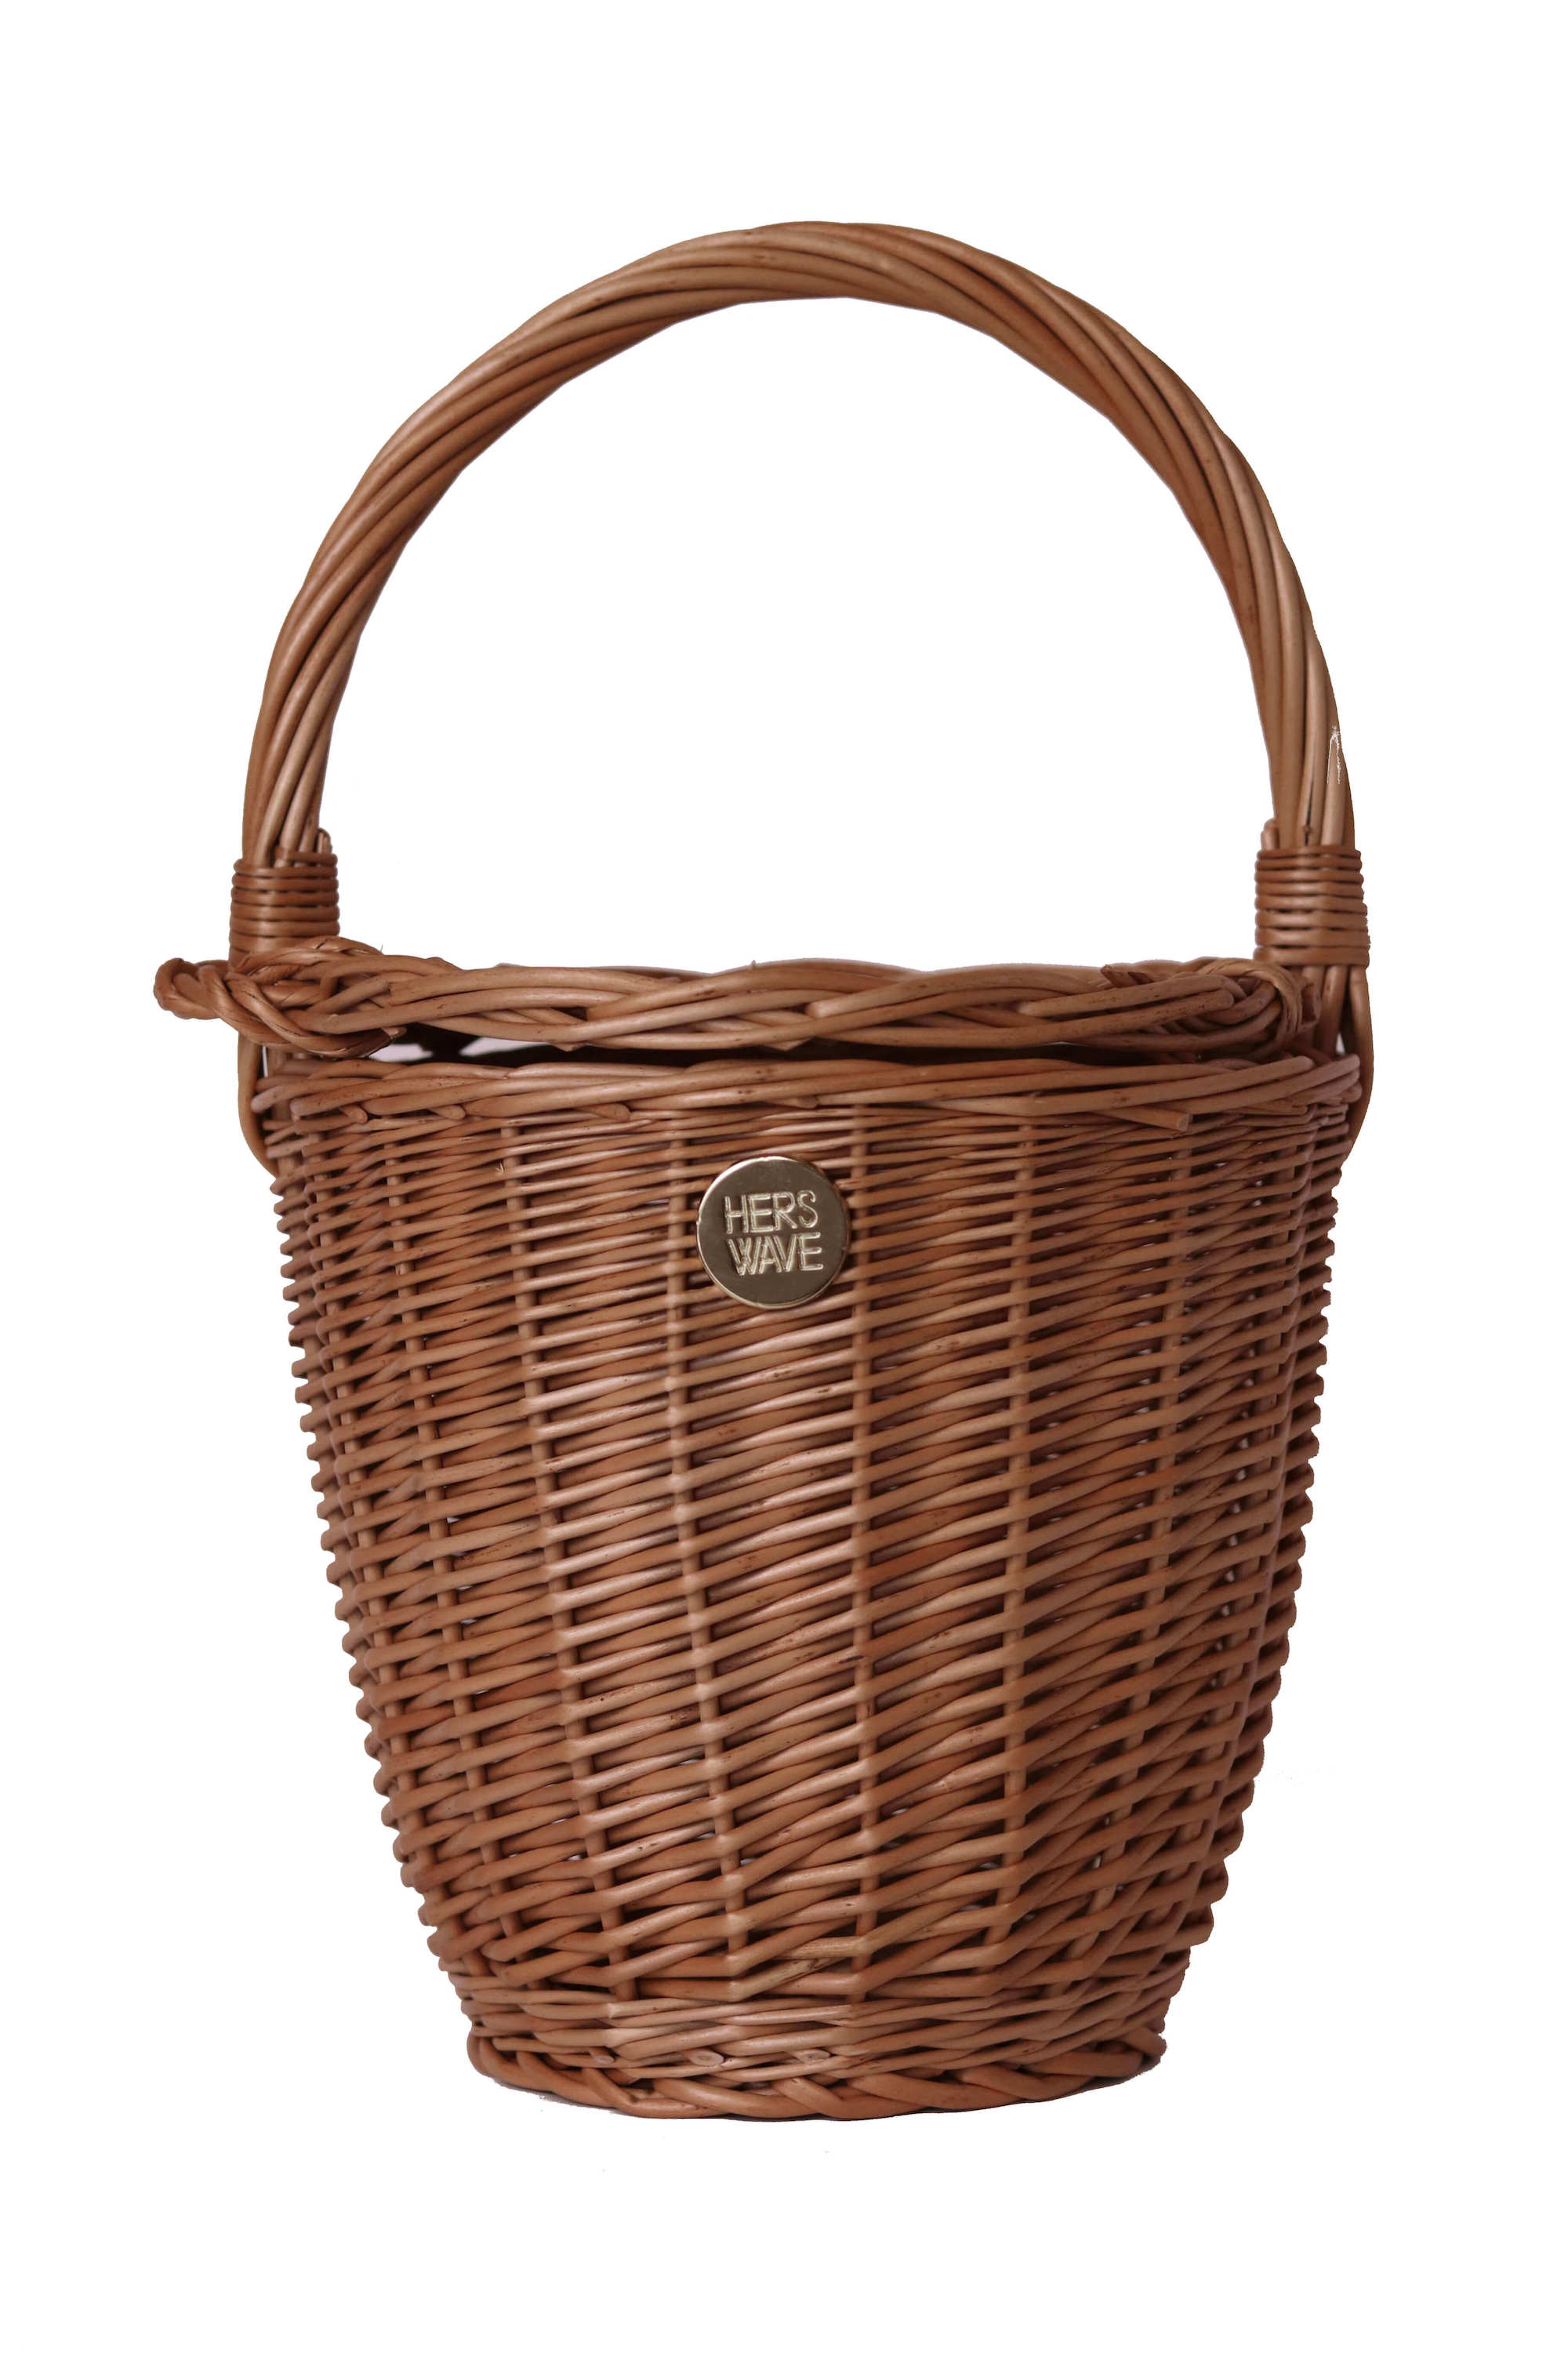 Hers Wave Handmade wicker straw bag basket summer beach accessory fashion